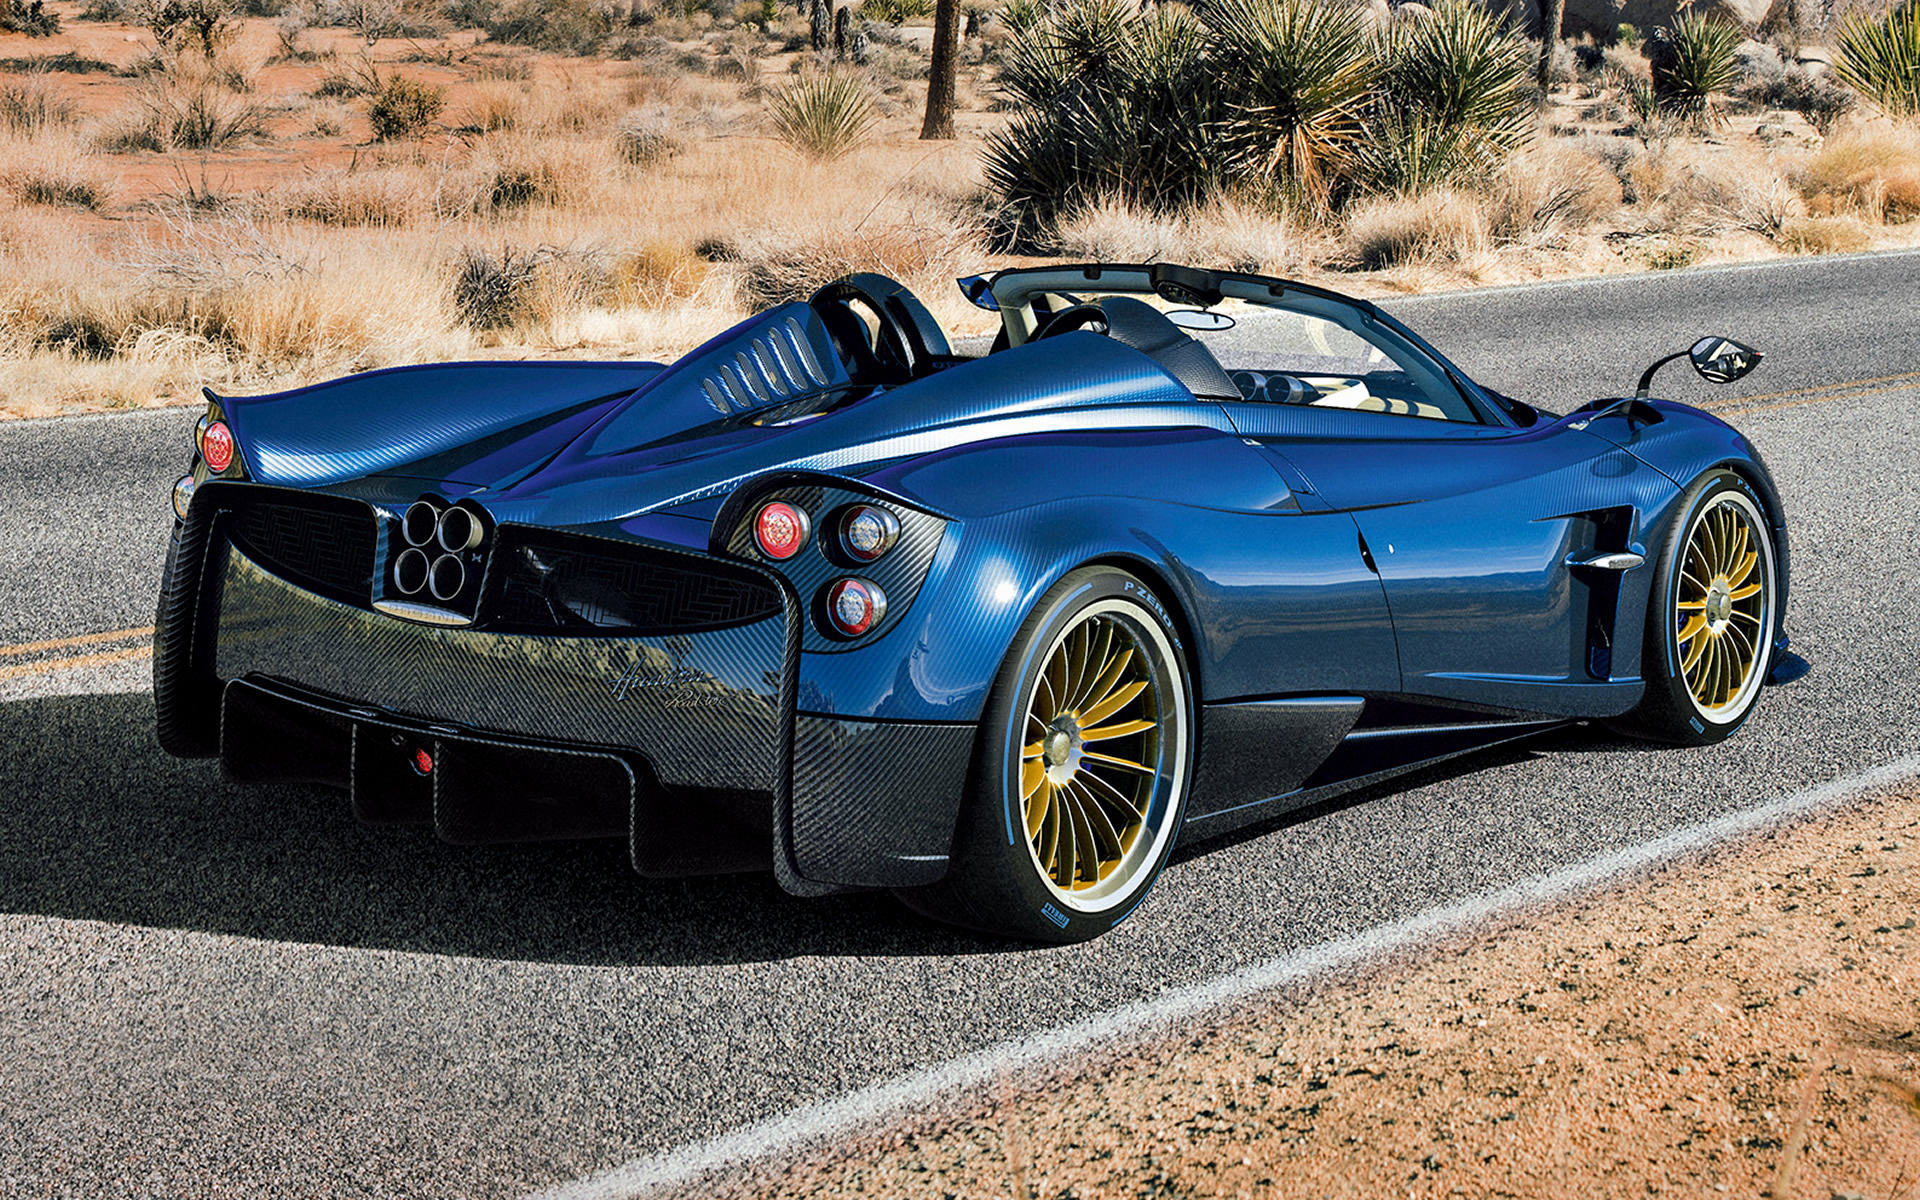 9 Seater Car >> 2017 Pagani Huayra Roadster - Wallpapers and HD Images ...